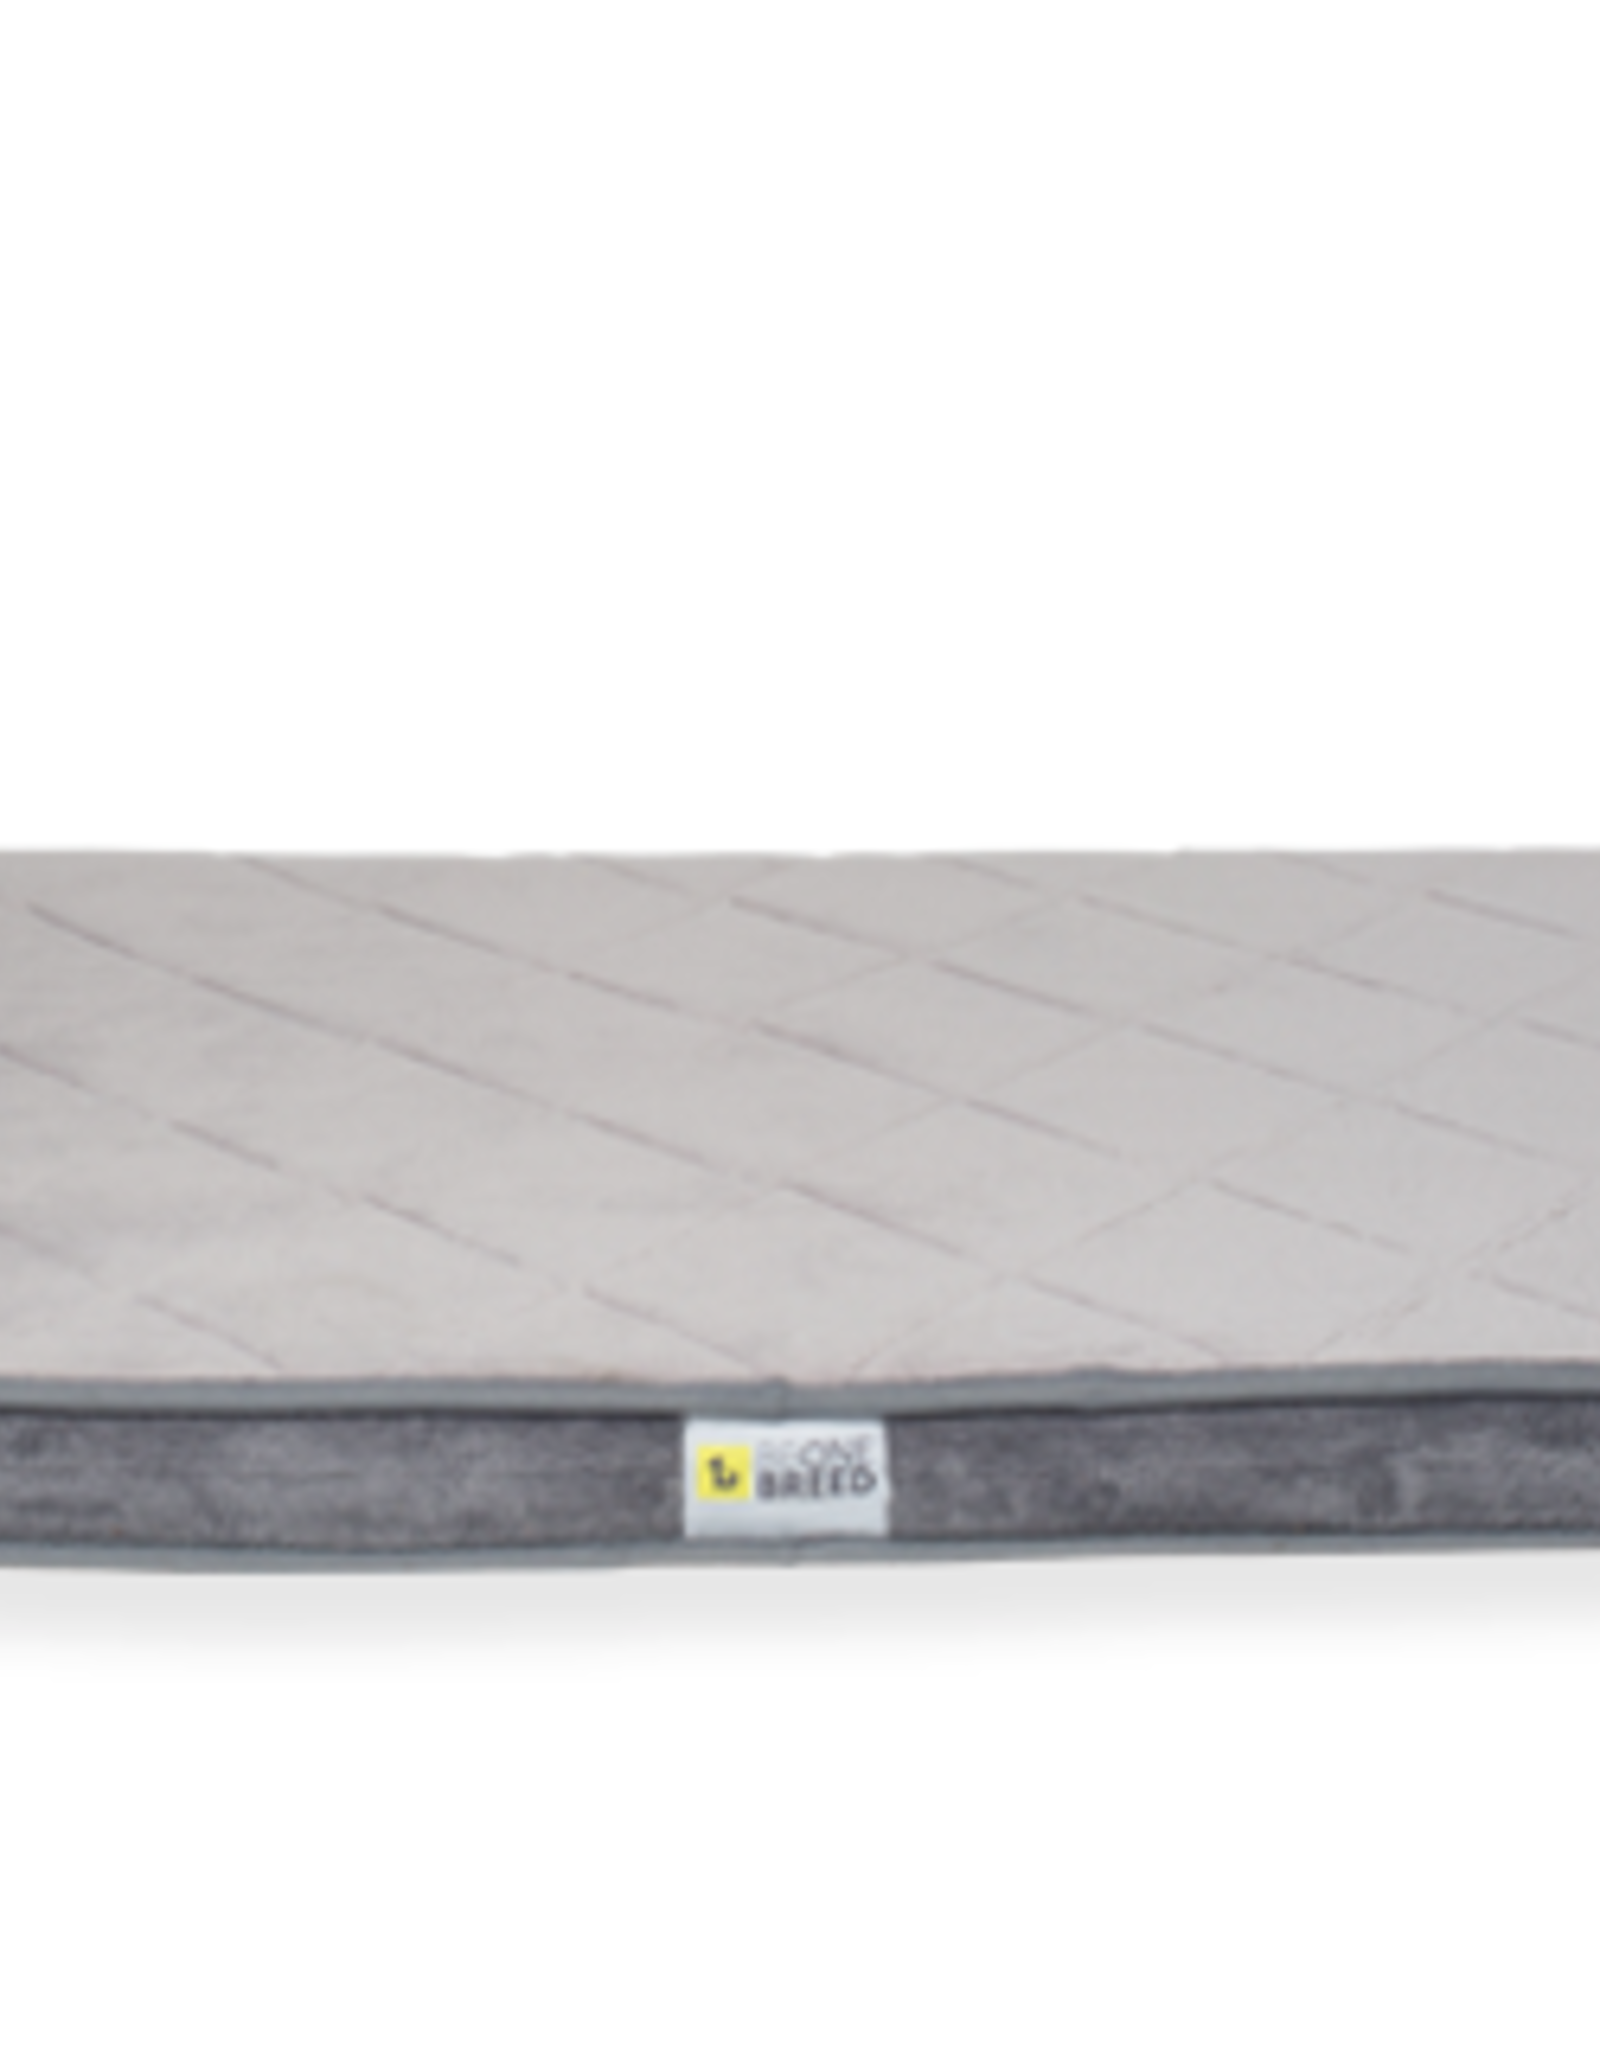 BE ONE BREED DIAMOND BED GRAY SMALL